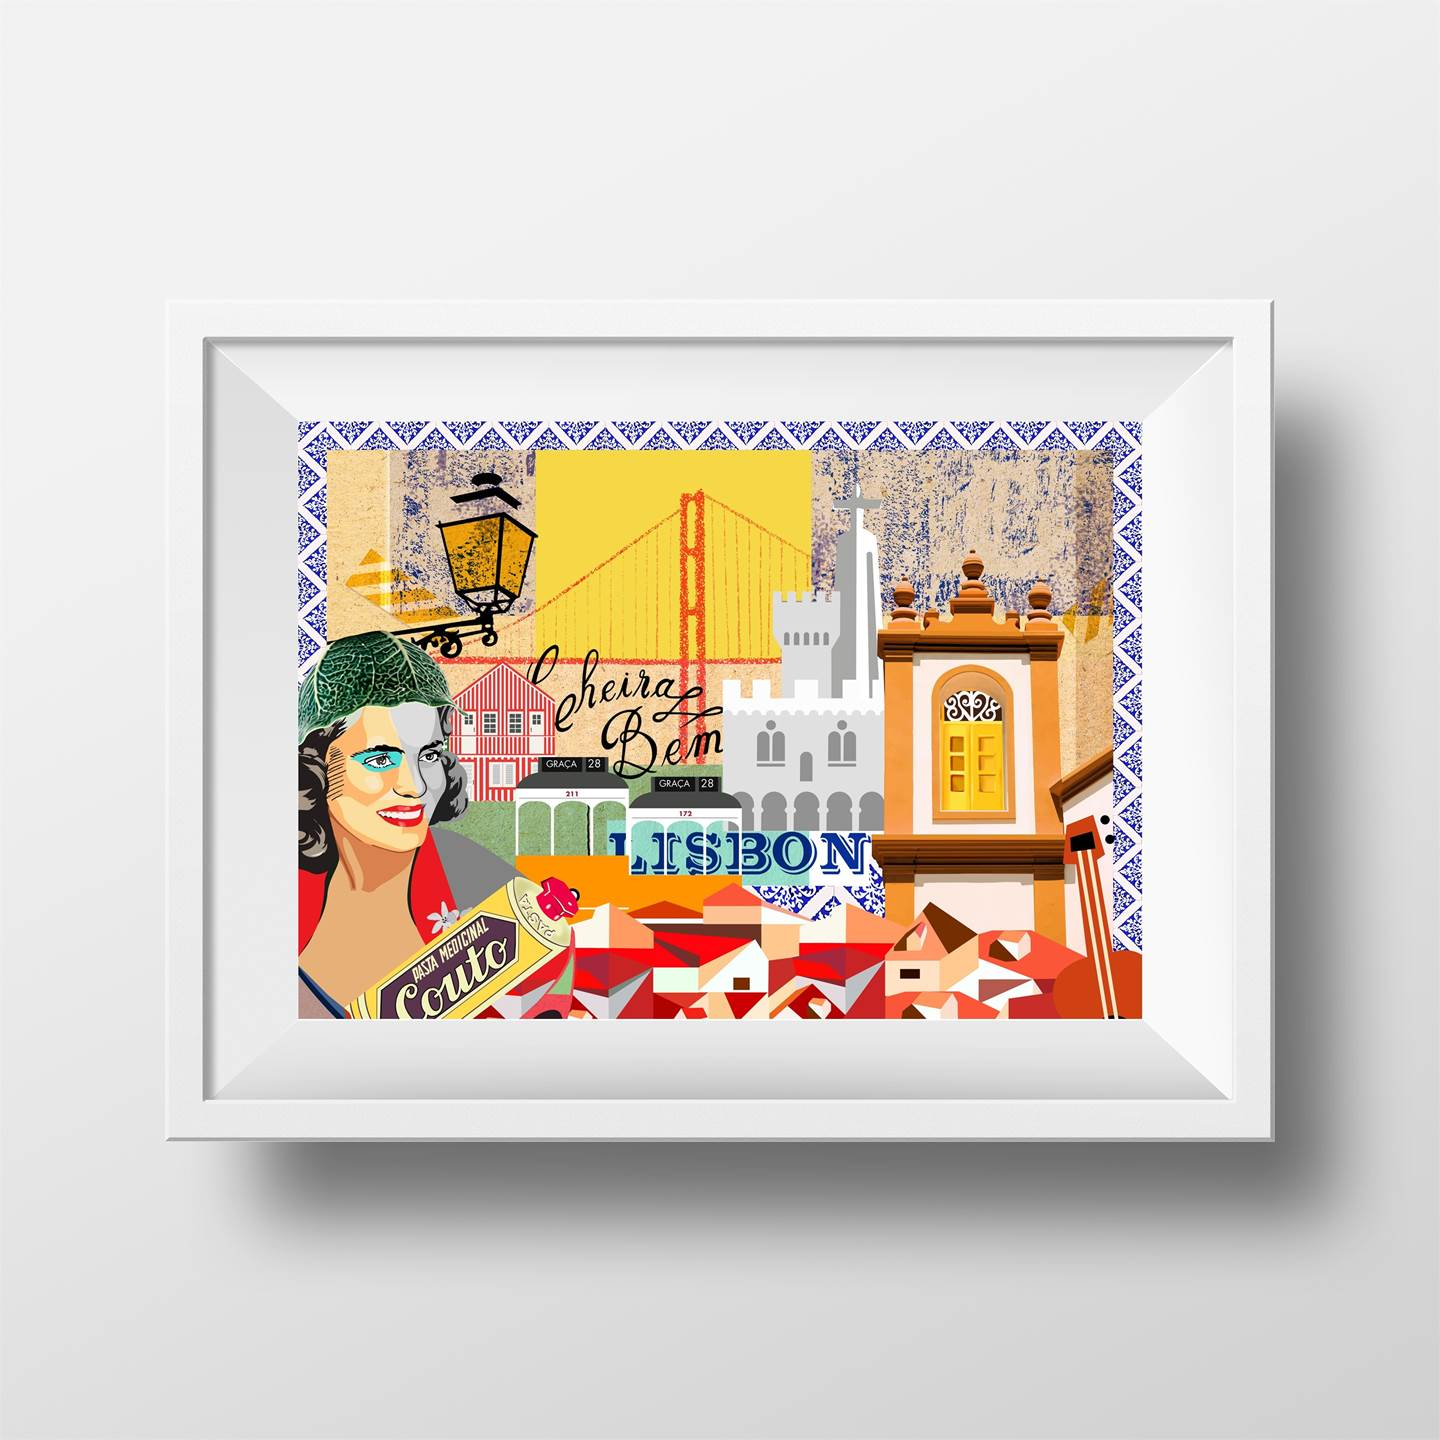 Cheira a Lisboa, original Architecture Collage Drawing and Illustration by Maria João Faustino